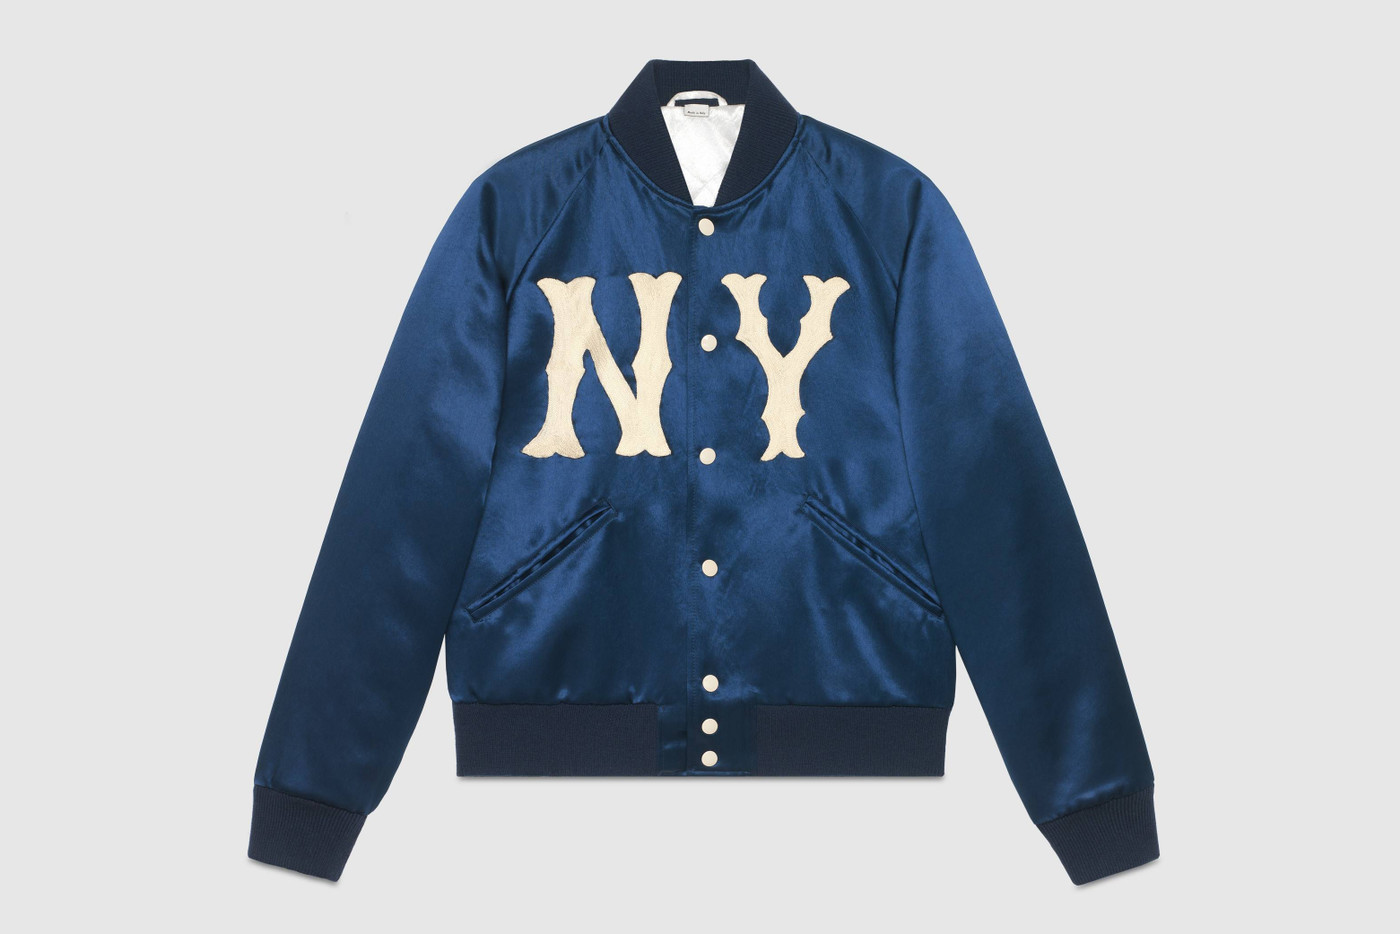 yankees-gucci-apparel-6 – Copy